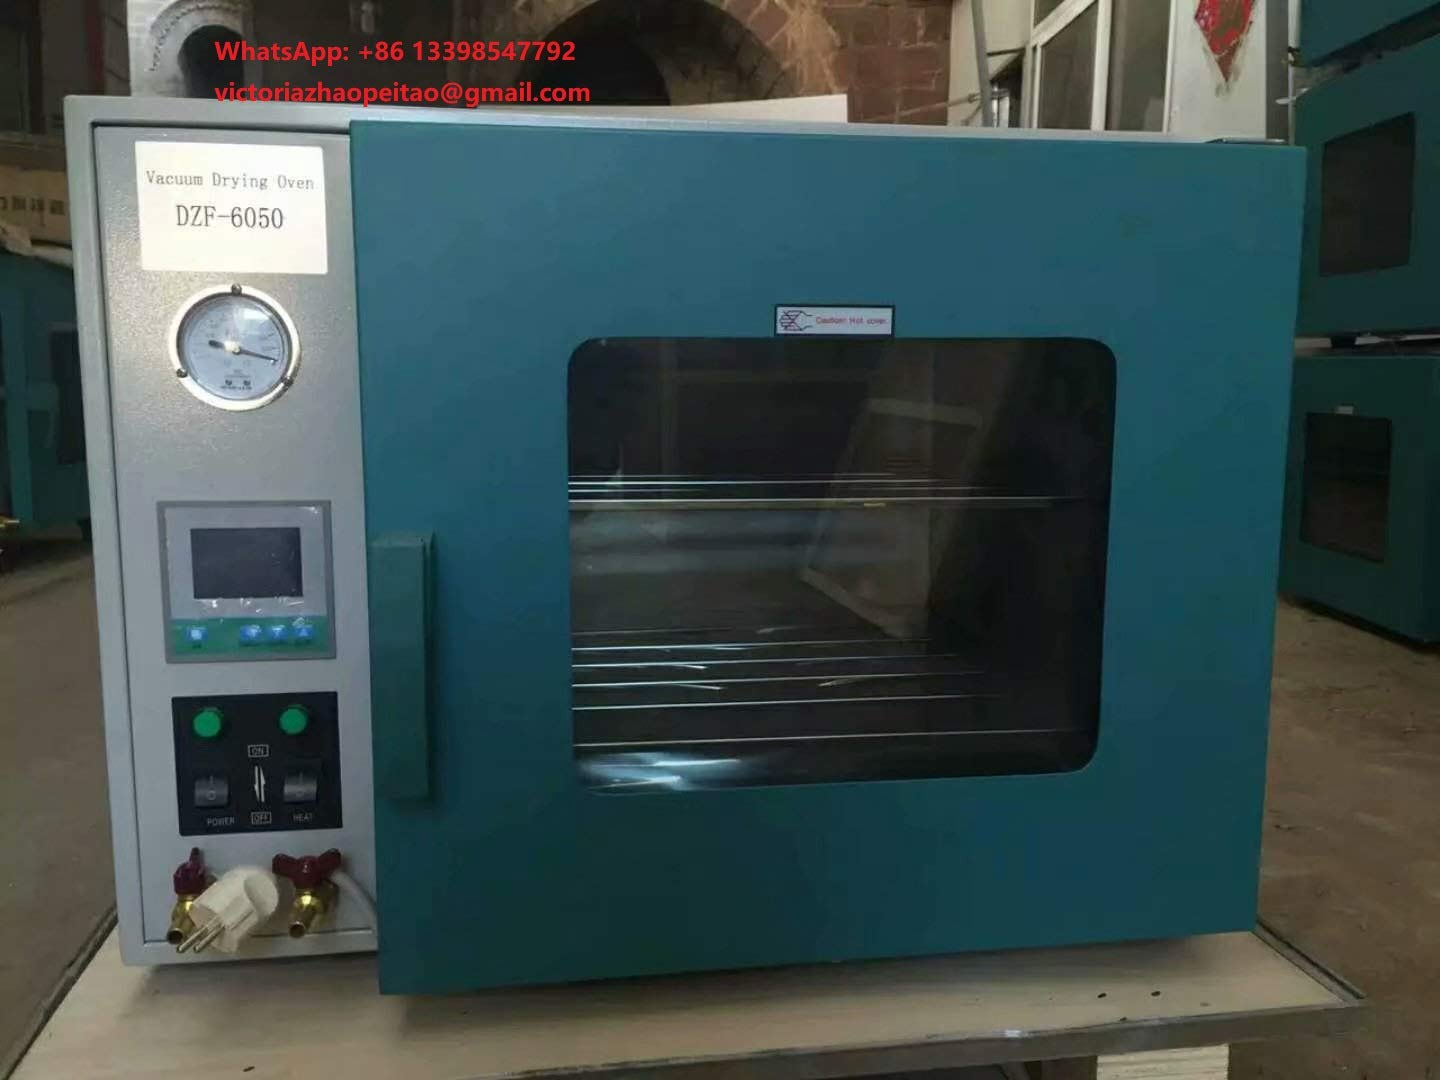 Hot Selling DZF 6050 1.9 Cu Ft Stainless Steel Vacuum Drying Oven for Laboratory Extraction